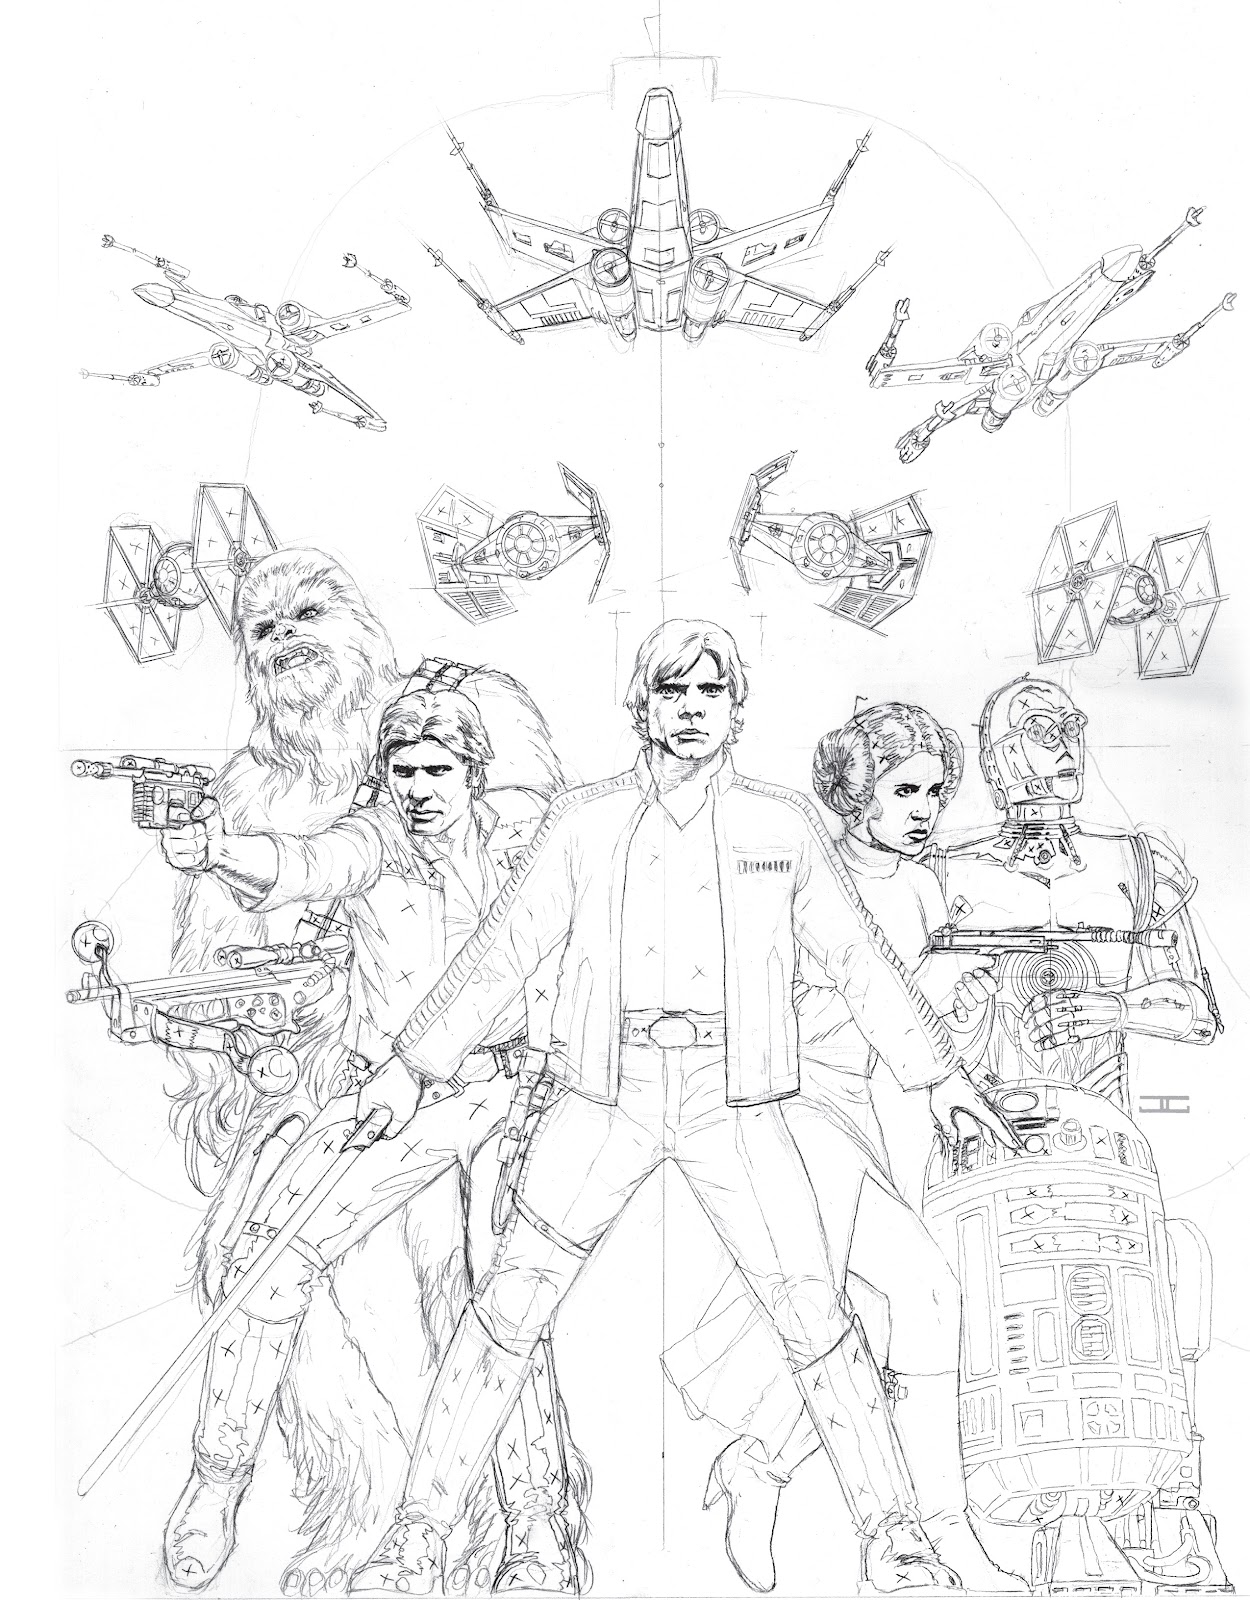 Read online The Marvel Art of Star Wars comic -  Issue # TPB (Part 1) - 2